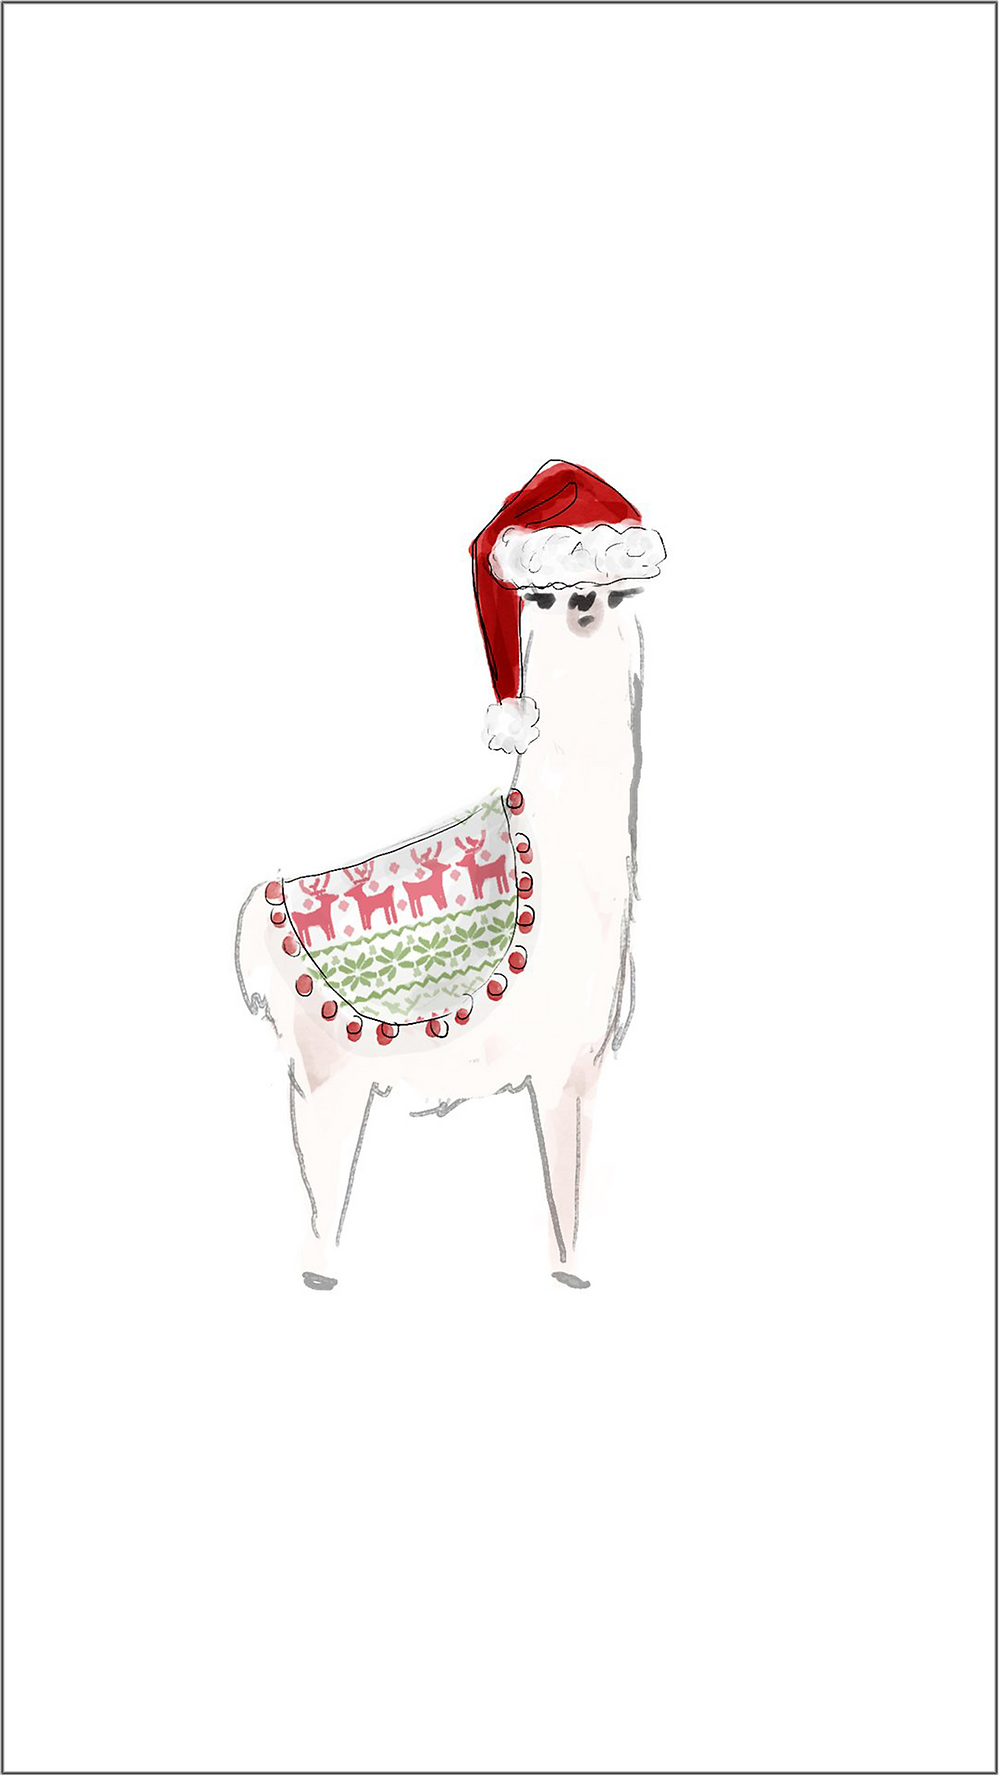 Holiday Phone Wallpapers - Christmas Backgrounds -- Christmas Phone backgrounds - winter phone backgrounds - cassandra ann - christmas llama